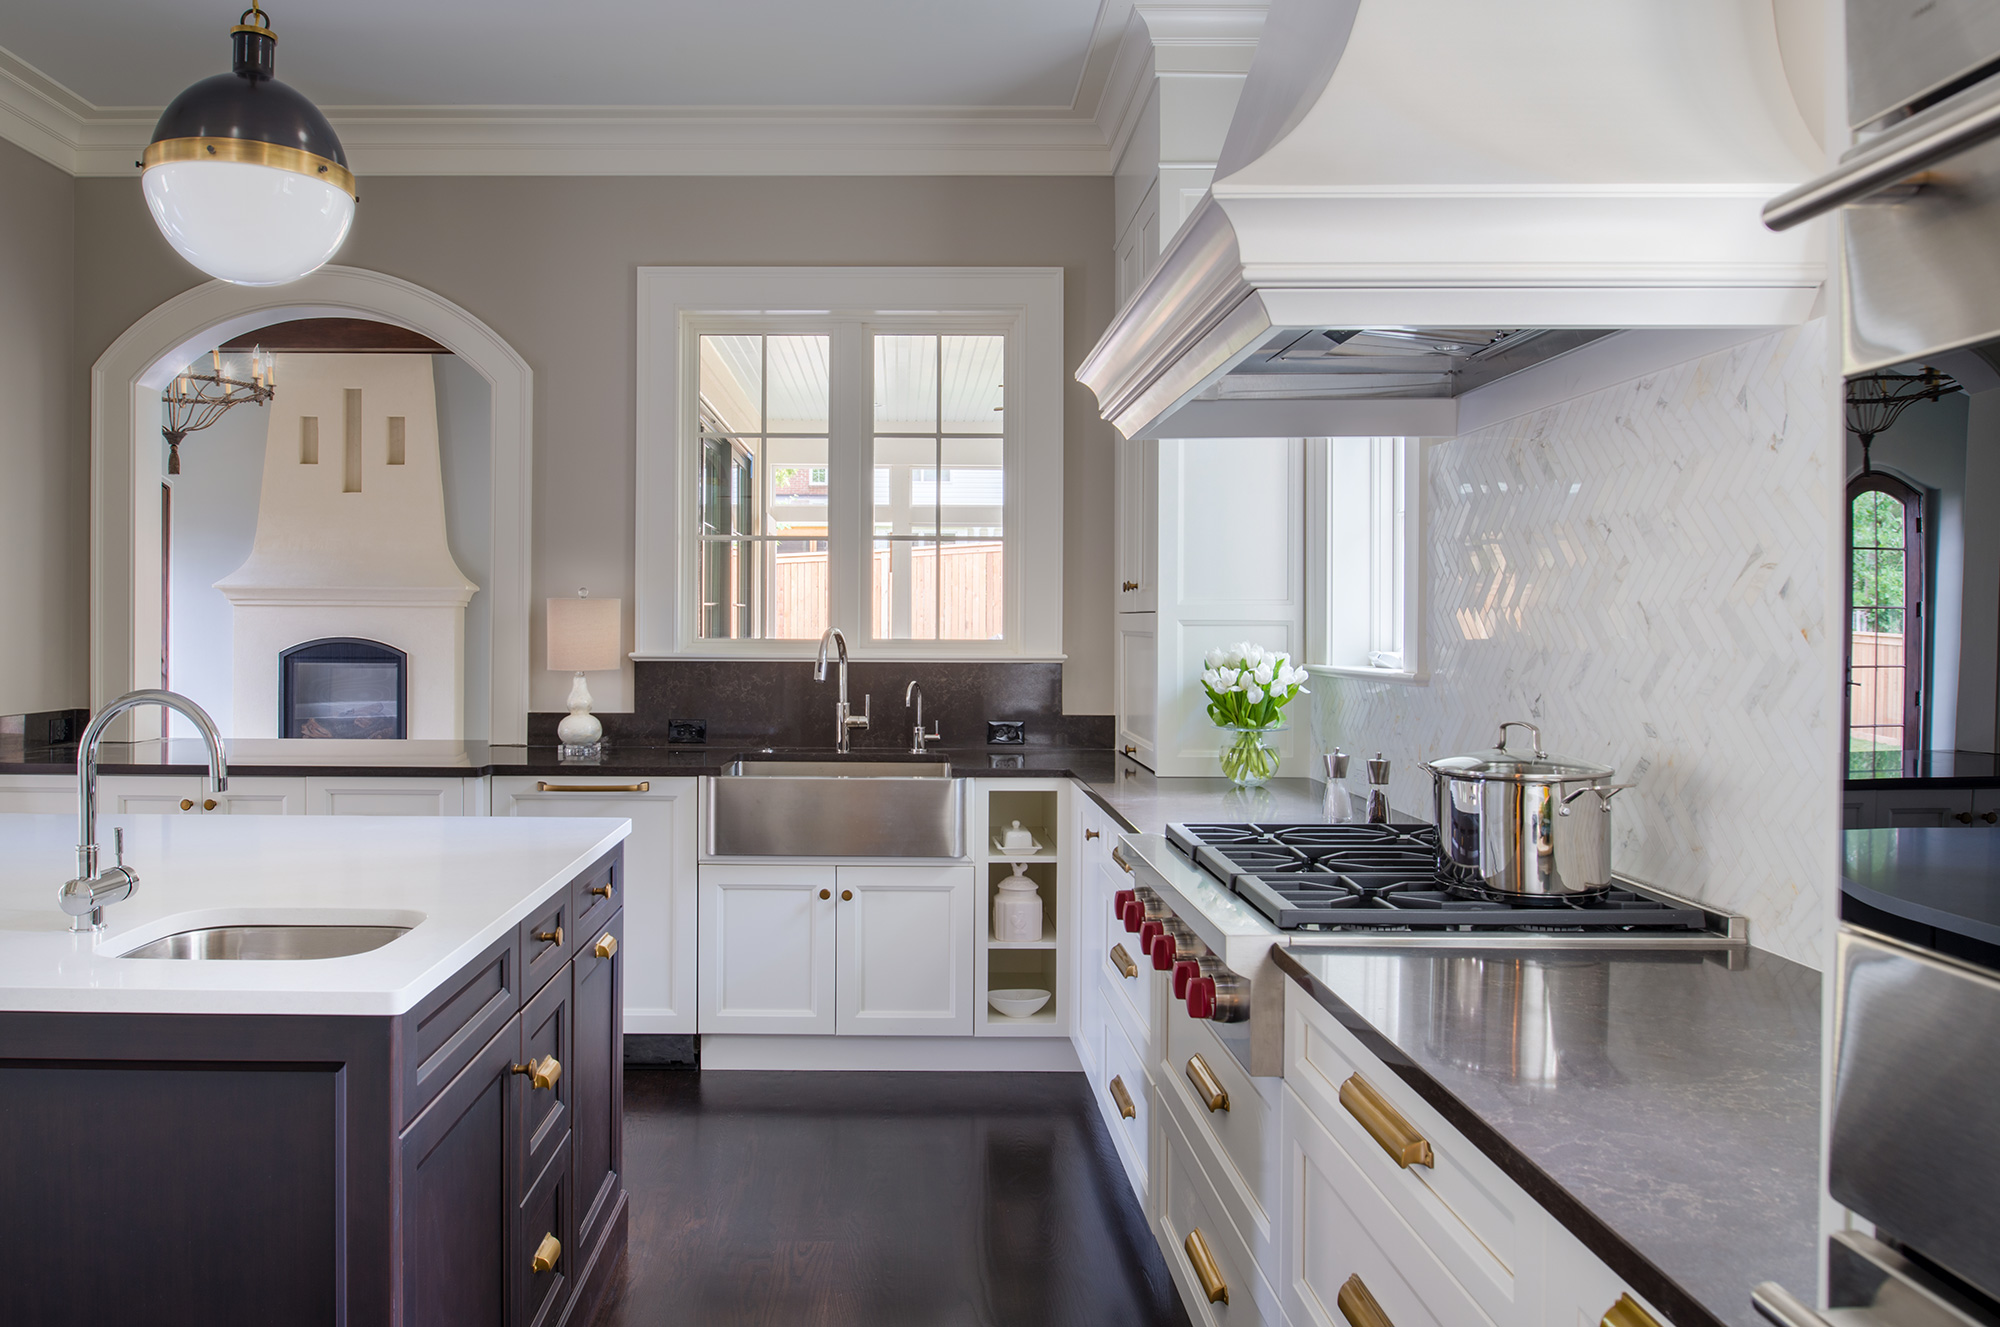 http://www.houzz.com/projects/1691435/bethesda-custom-home